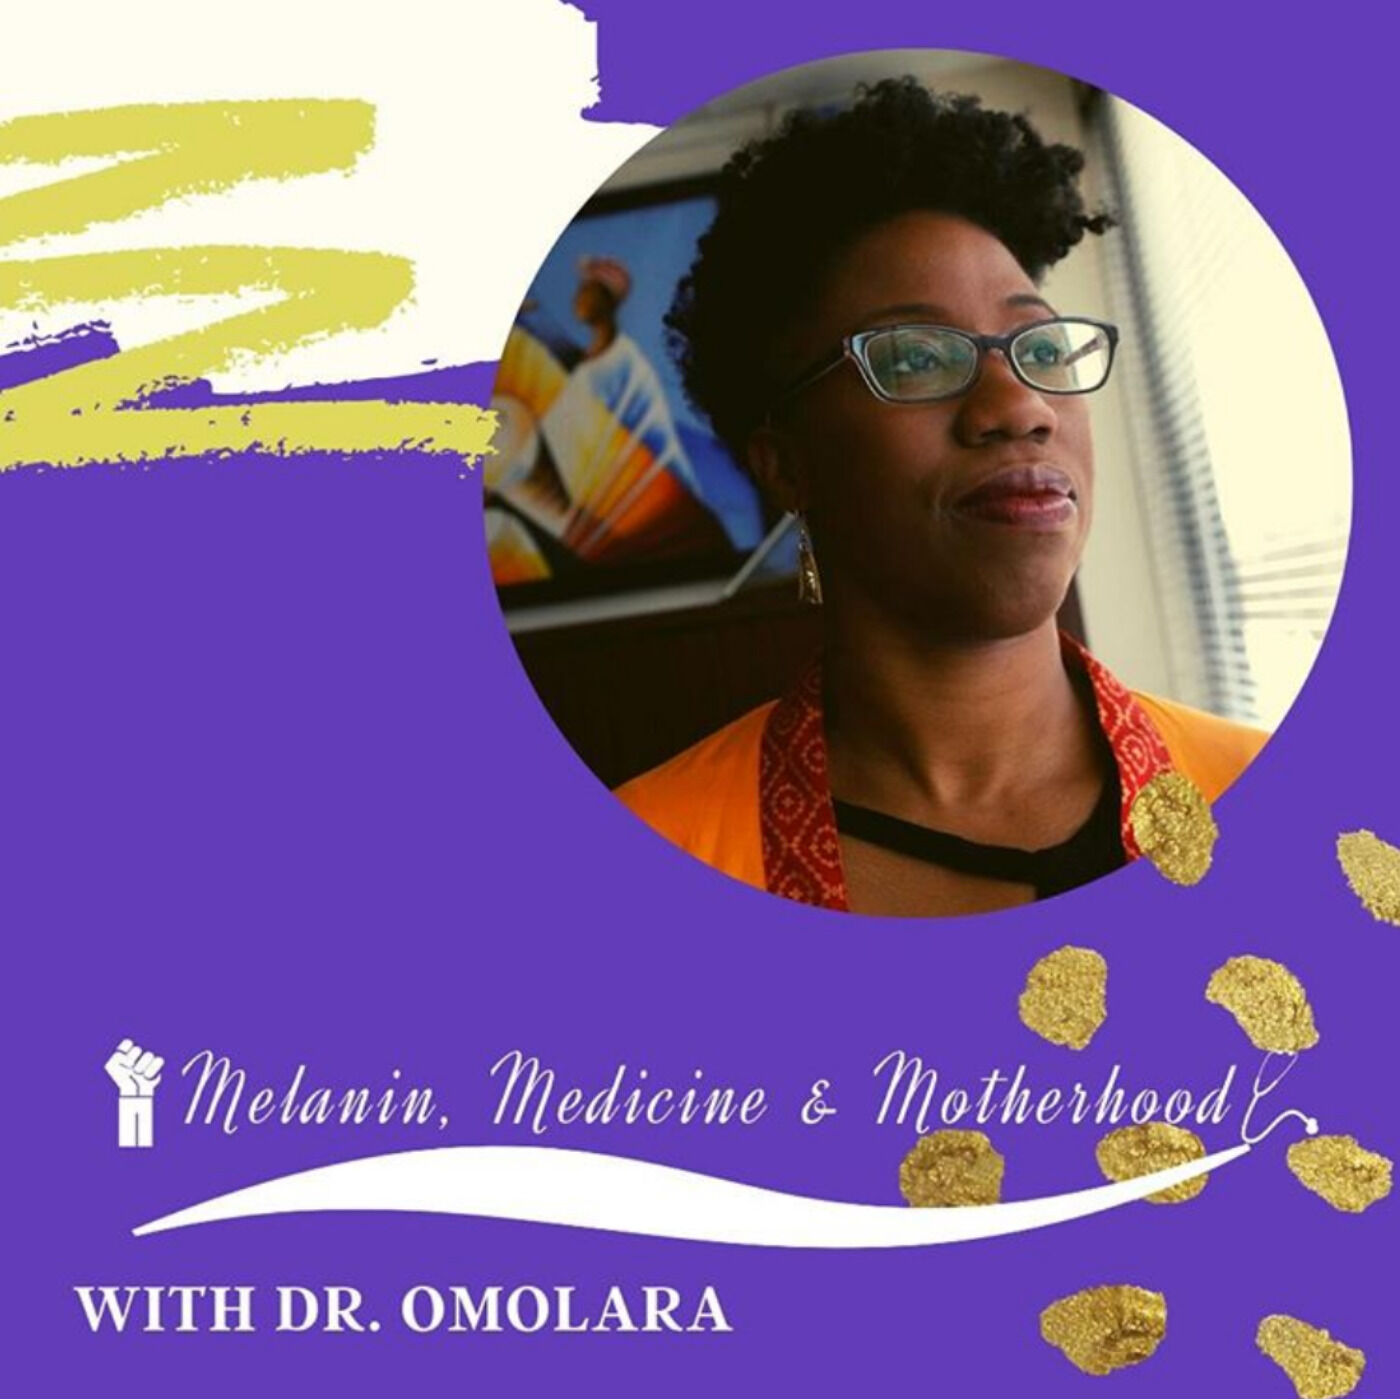 Episode 28: The Journey of Creating Kits of Hope to Address Childhood Trauma with Dr. Hokehe Effiong